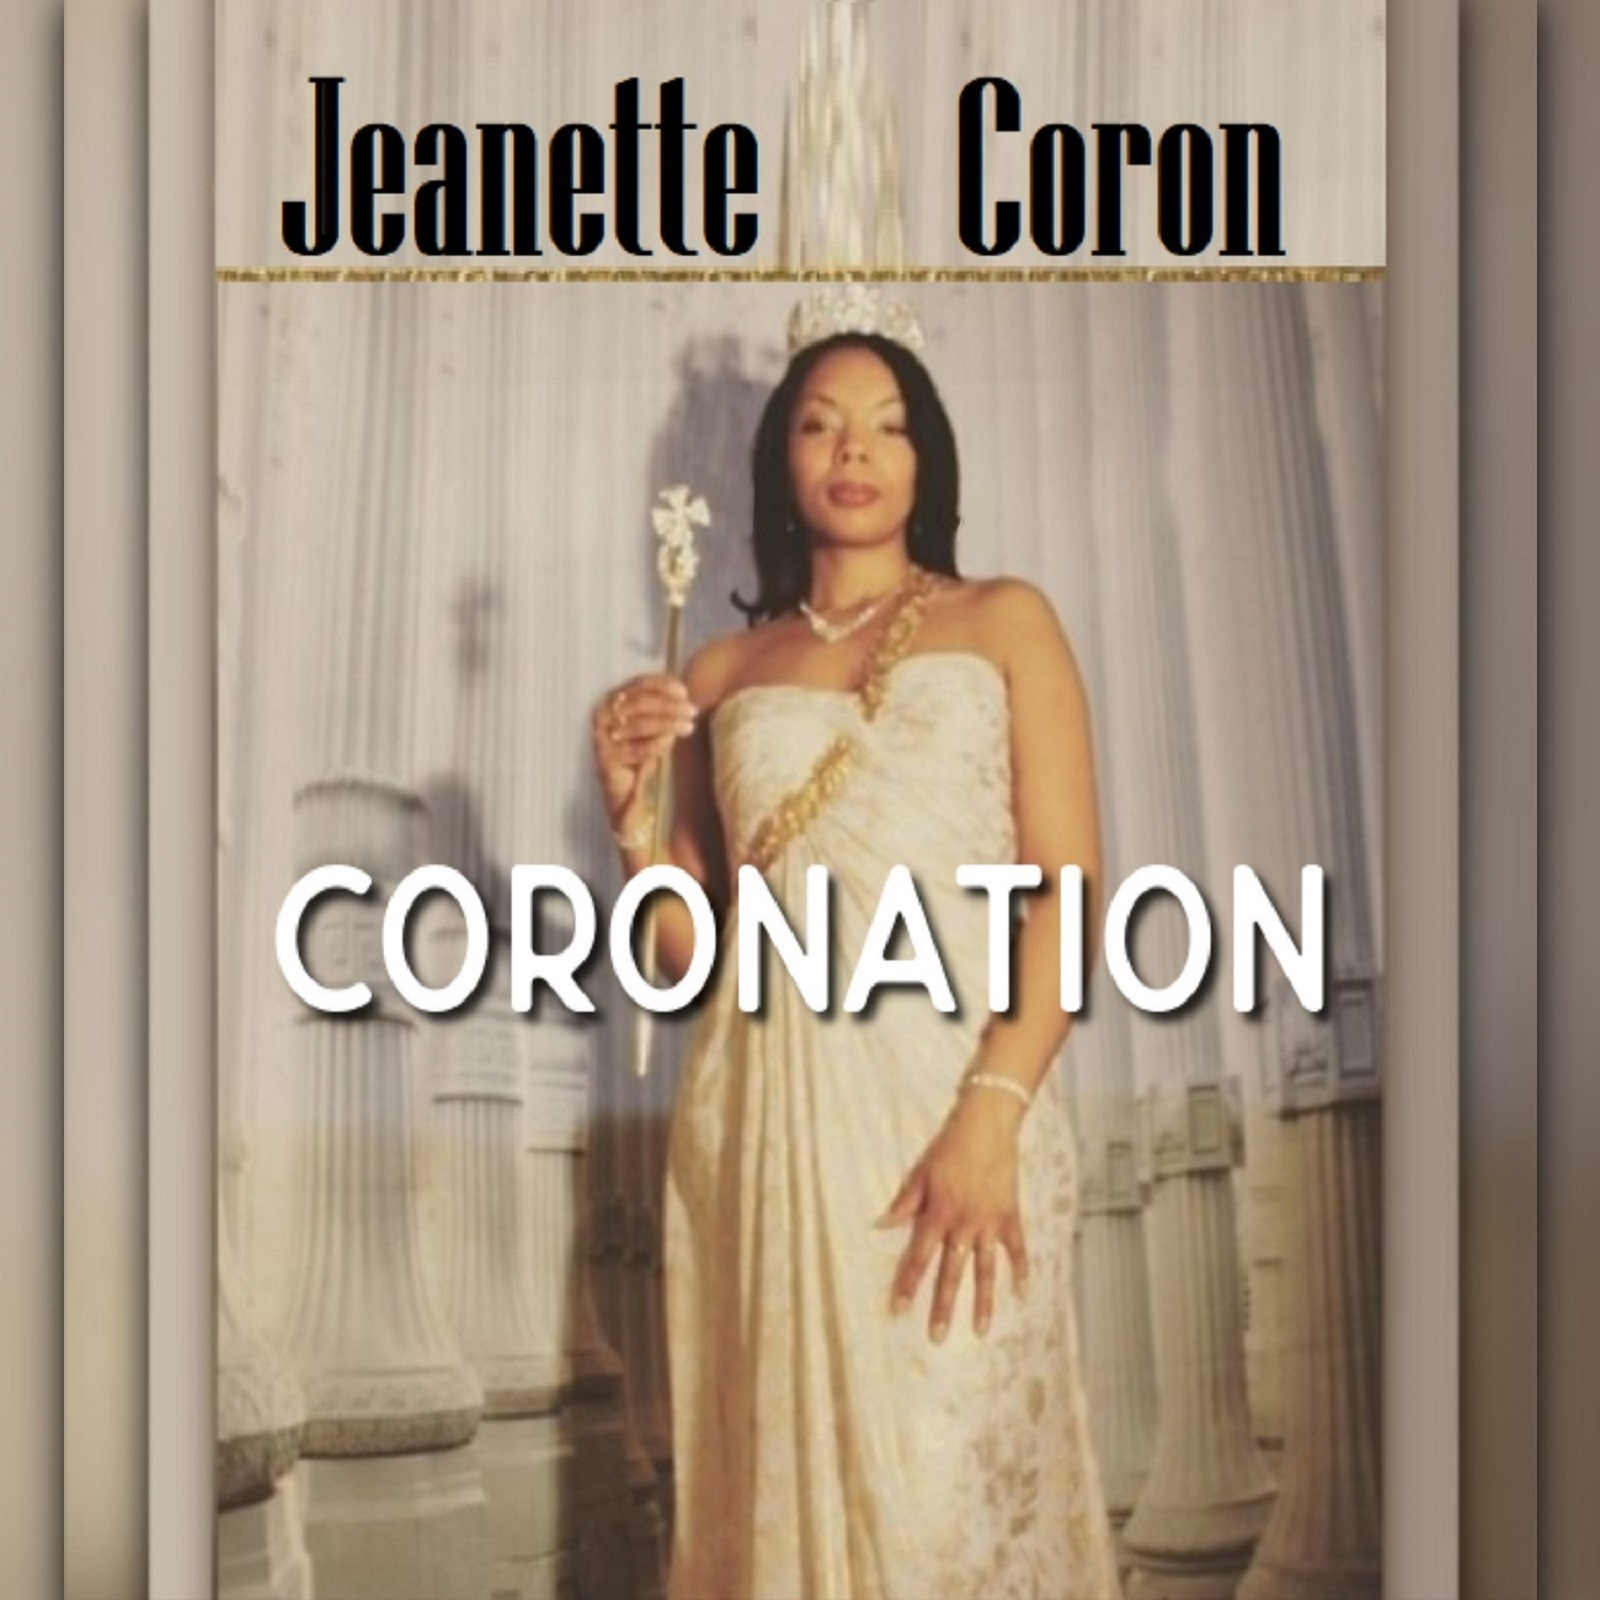 Hit-Maker, Producer and Author Jeanette Coron Releases 'Coronation' Music Album